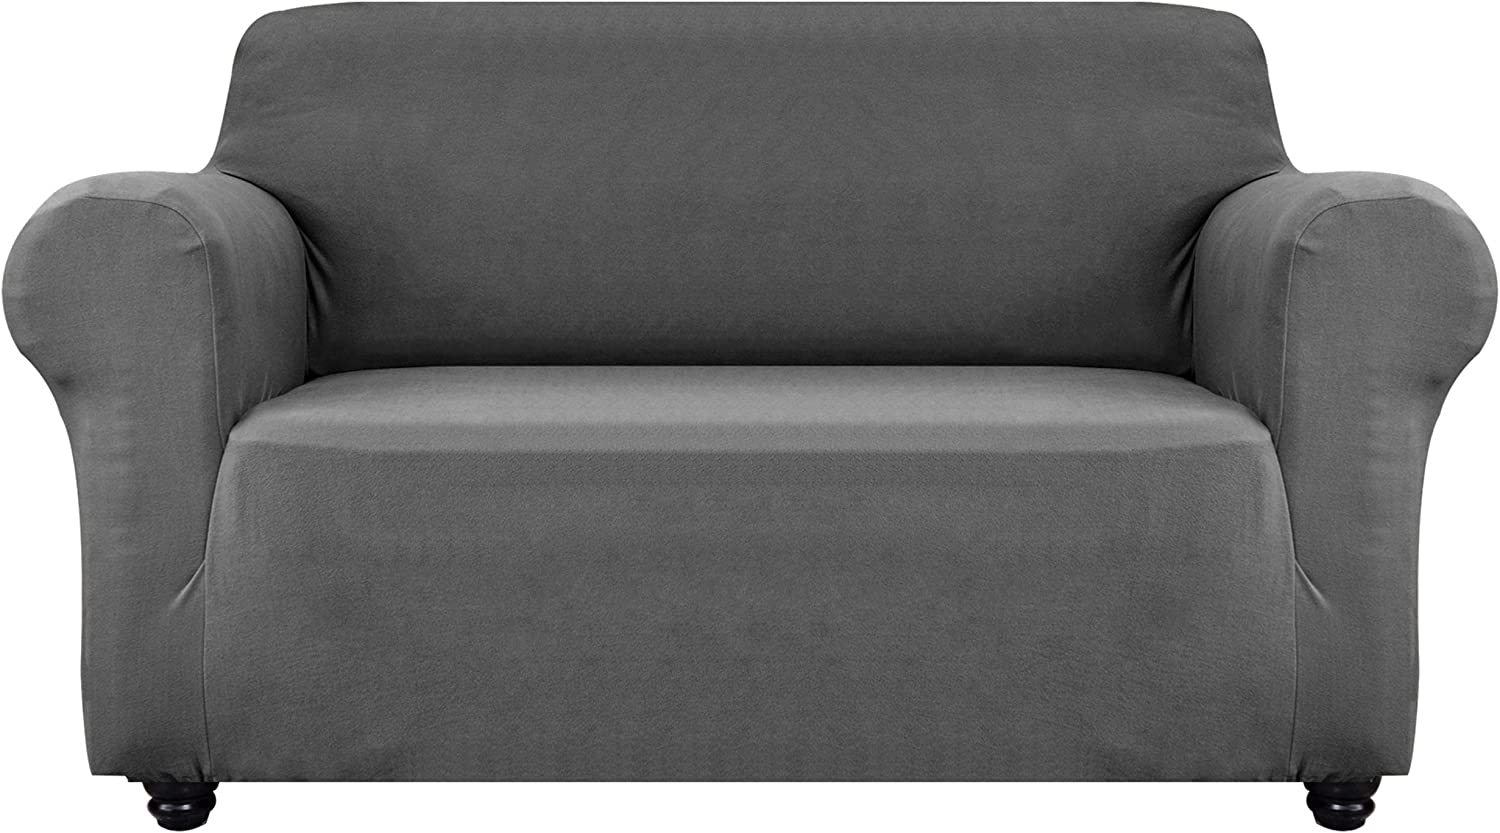 Obytex Stretch Sofa Cover Soft and Comfortable Upgrade Pattern Couch Covers Dog Cat Pet Slipcovers Furniture Protectors (Medium, Grey)